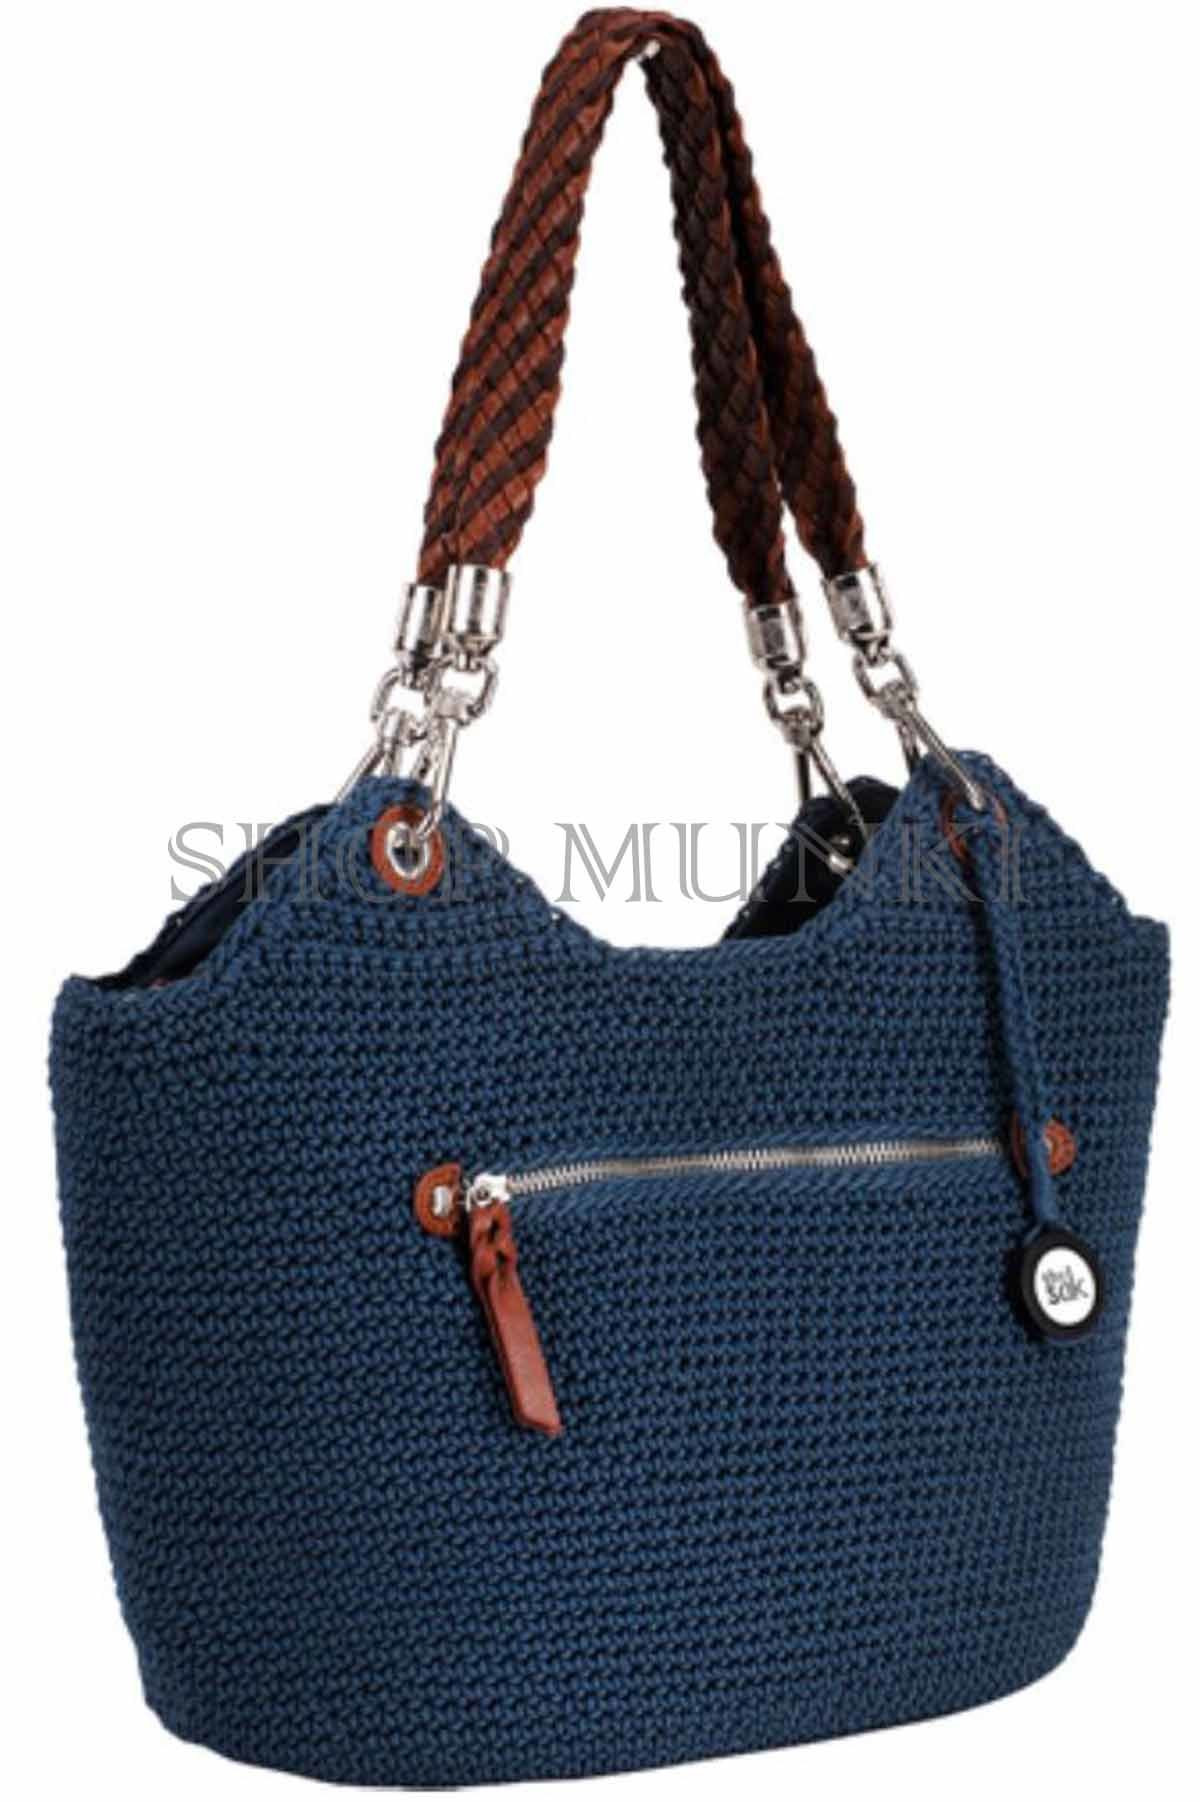 The Sak Crochet Lovely the Sak Indio Crochet Satchel Hand Bag Purse Of The Sak Crochet Awesome the Sak Black Crochet Cross Body Shoulder Bag Purse Handbag